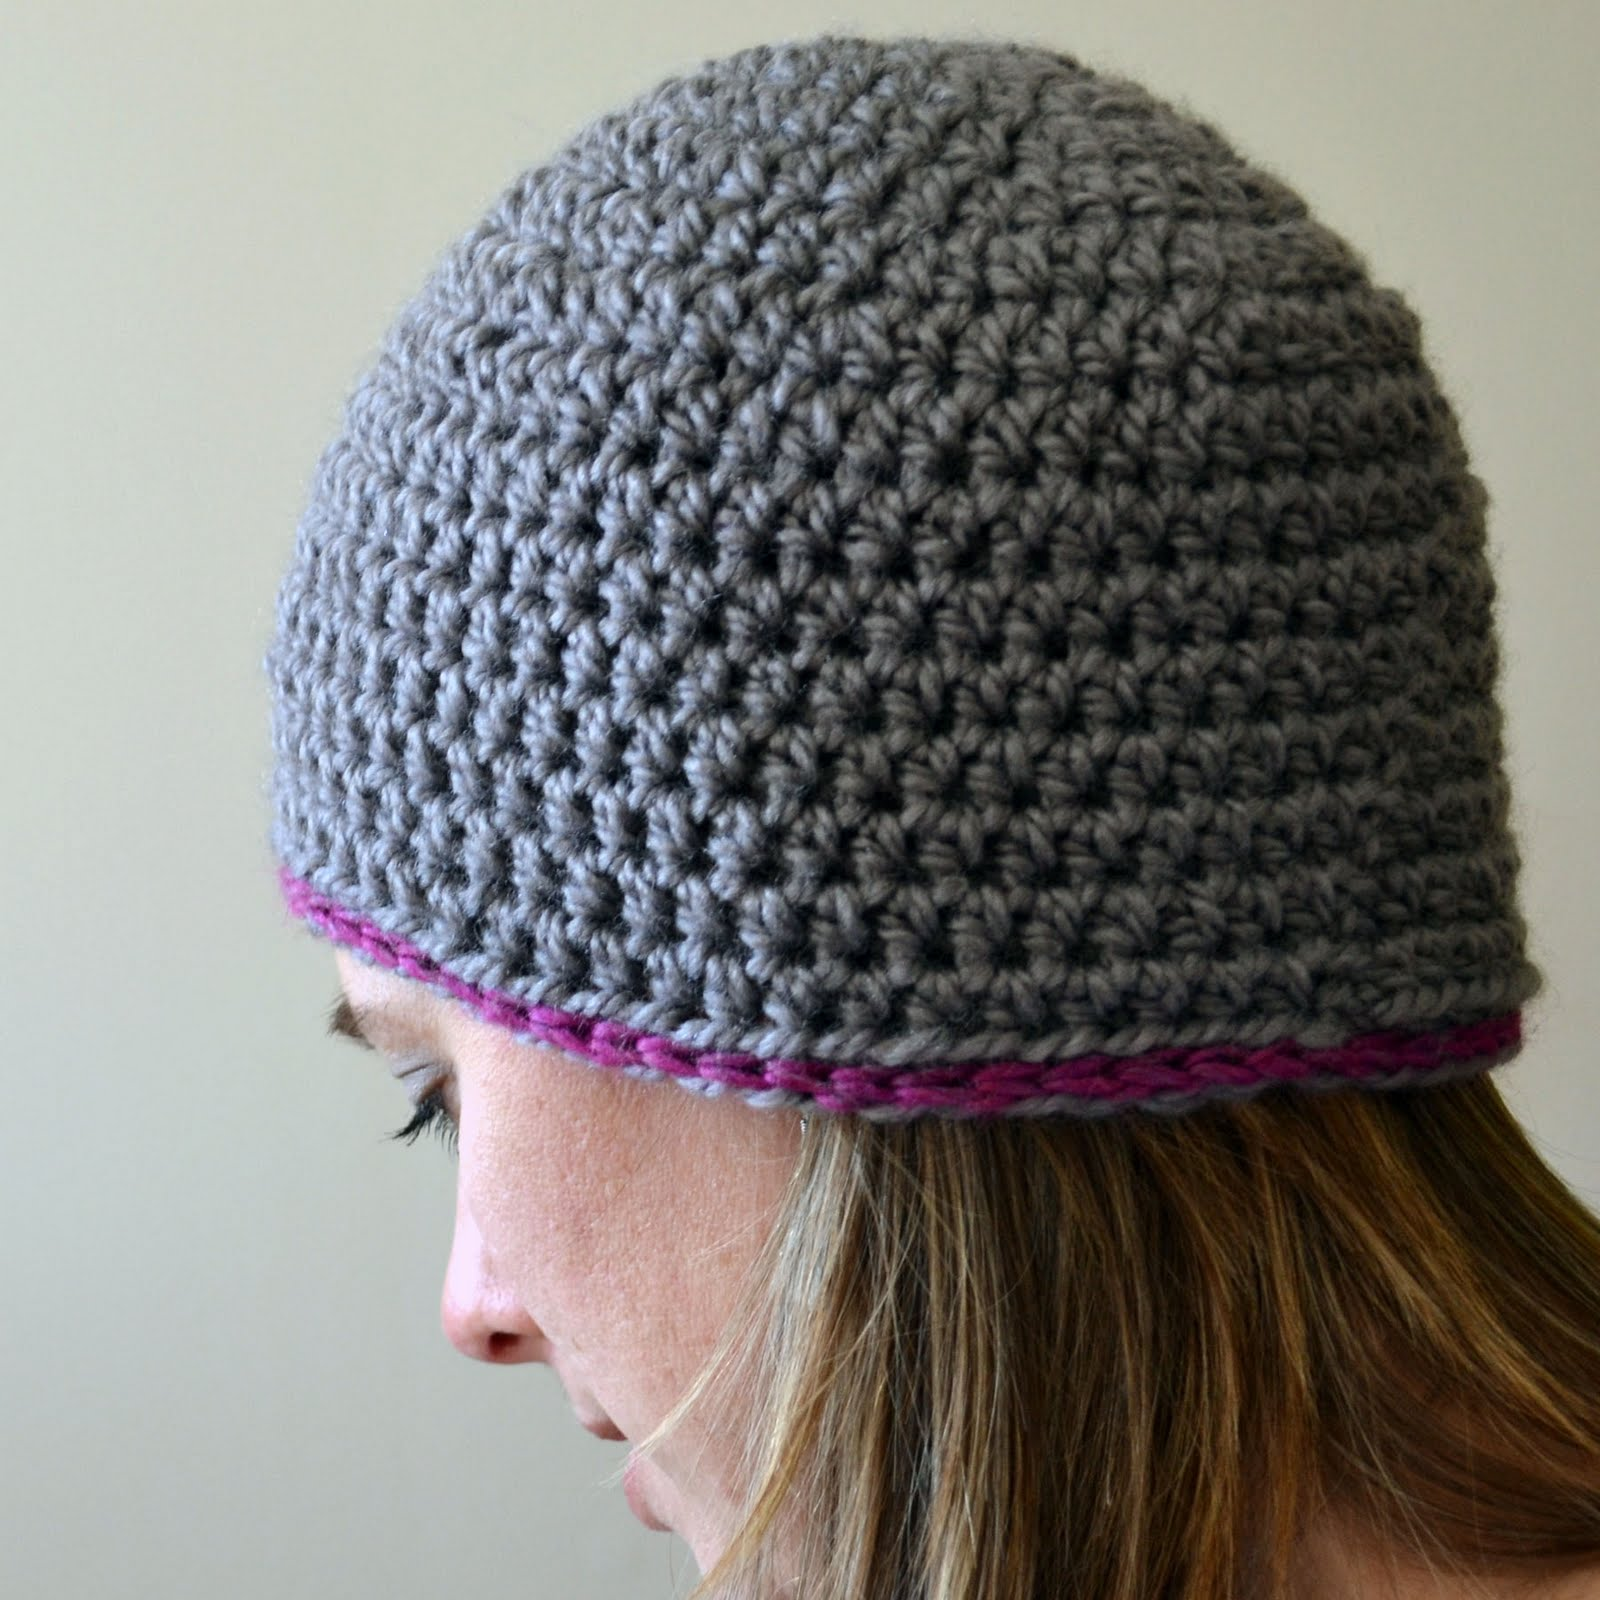 Easy Chunky Crochet Hat Pattern : Crochet in Color: Chunky Beanie Pattern